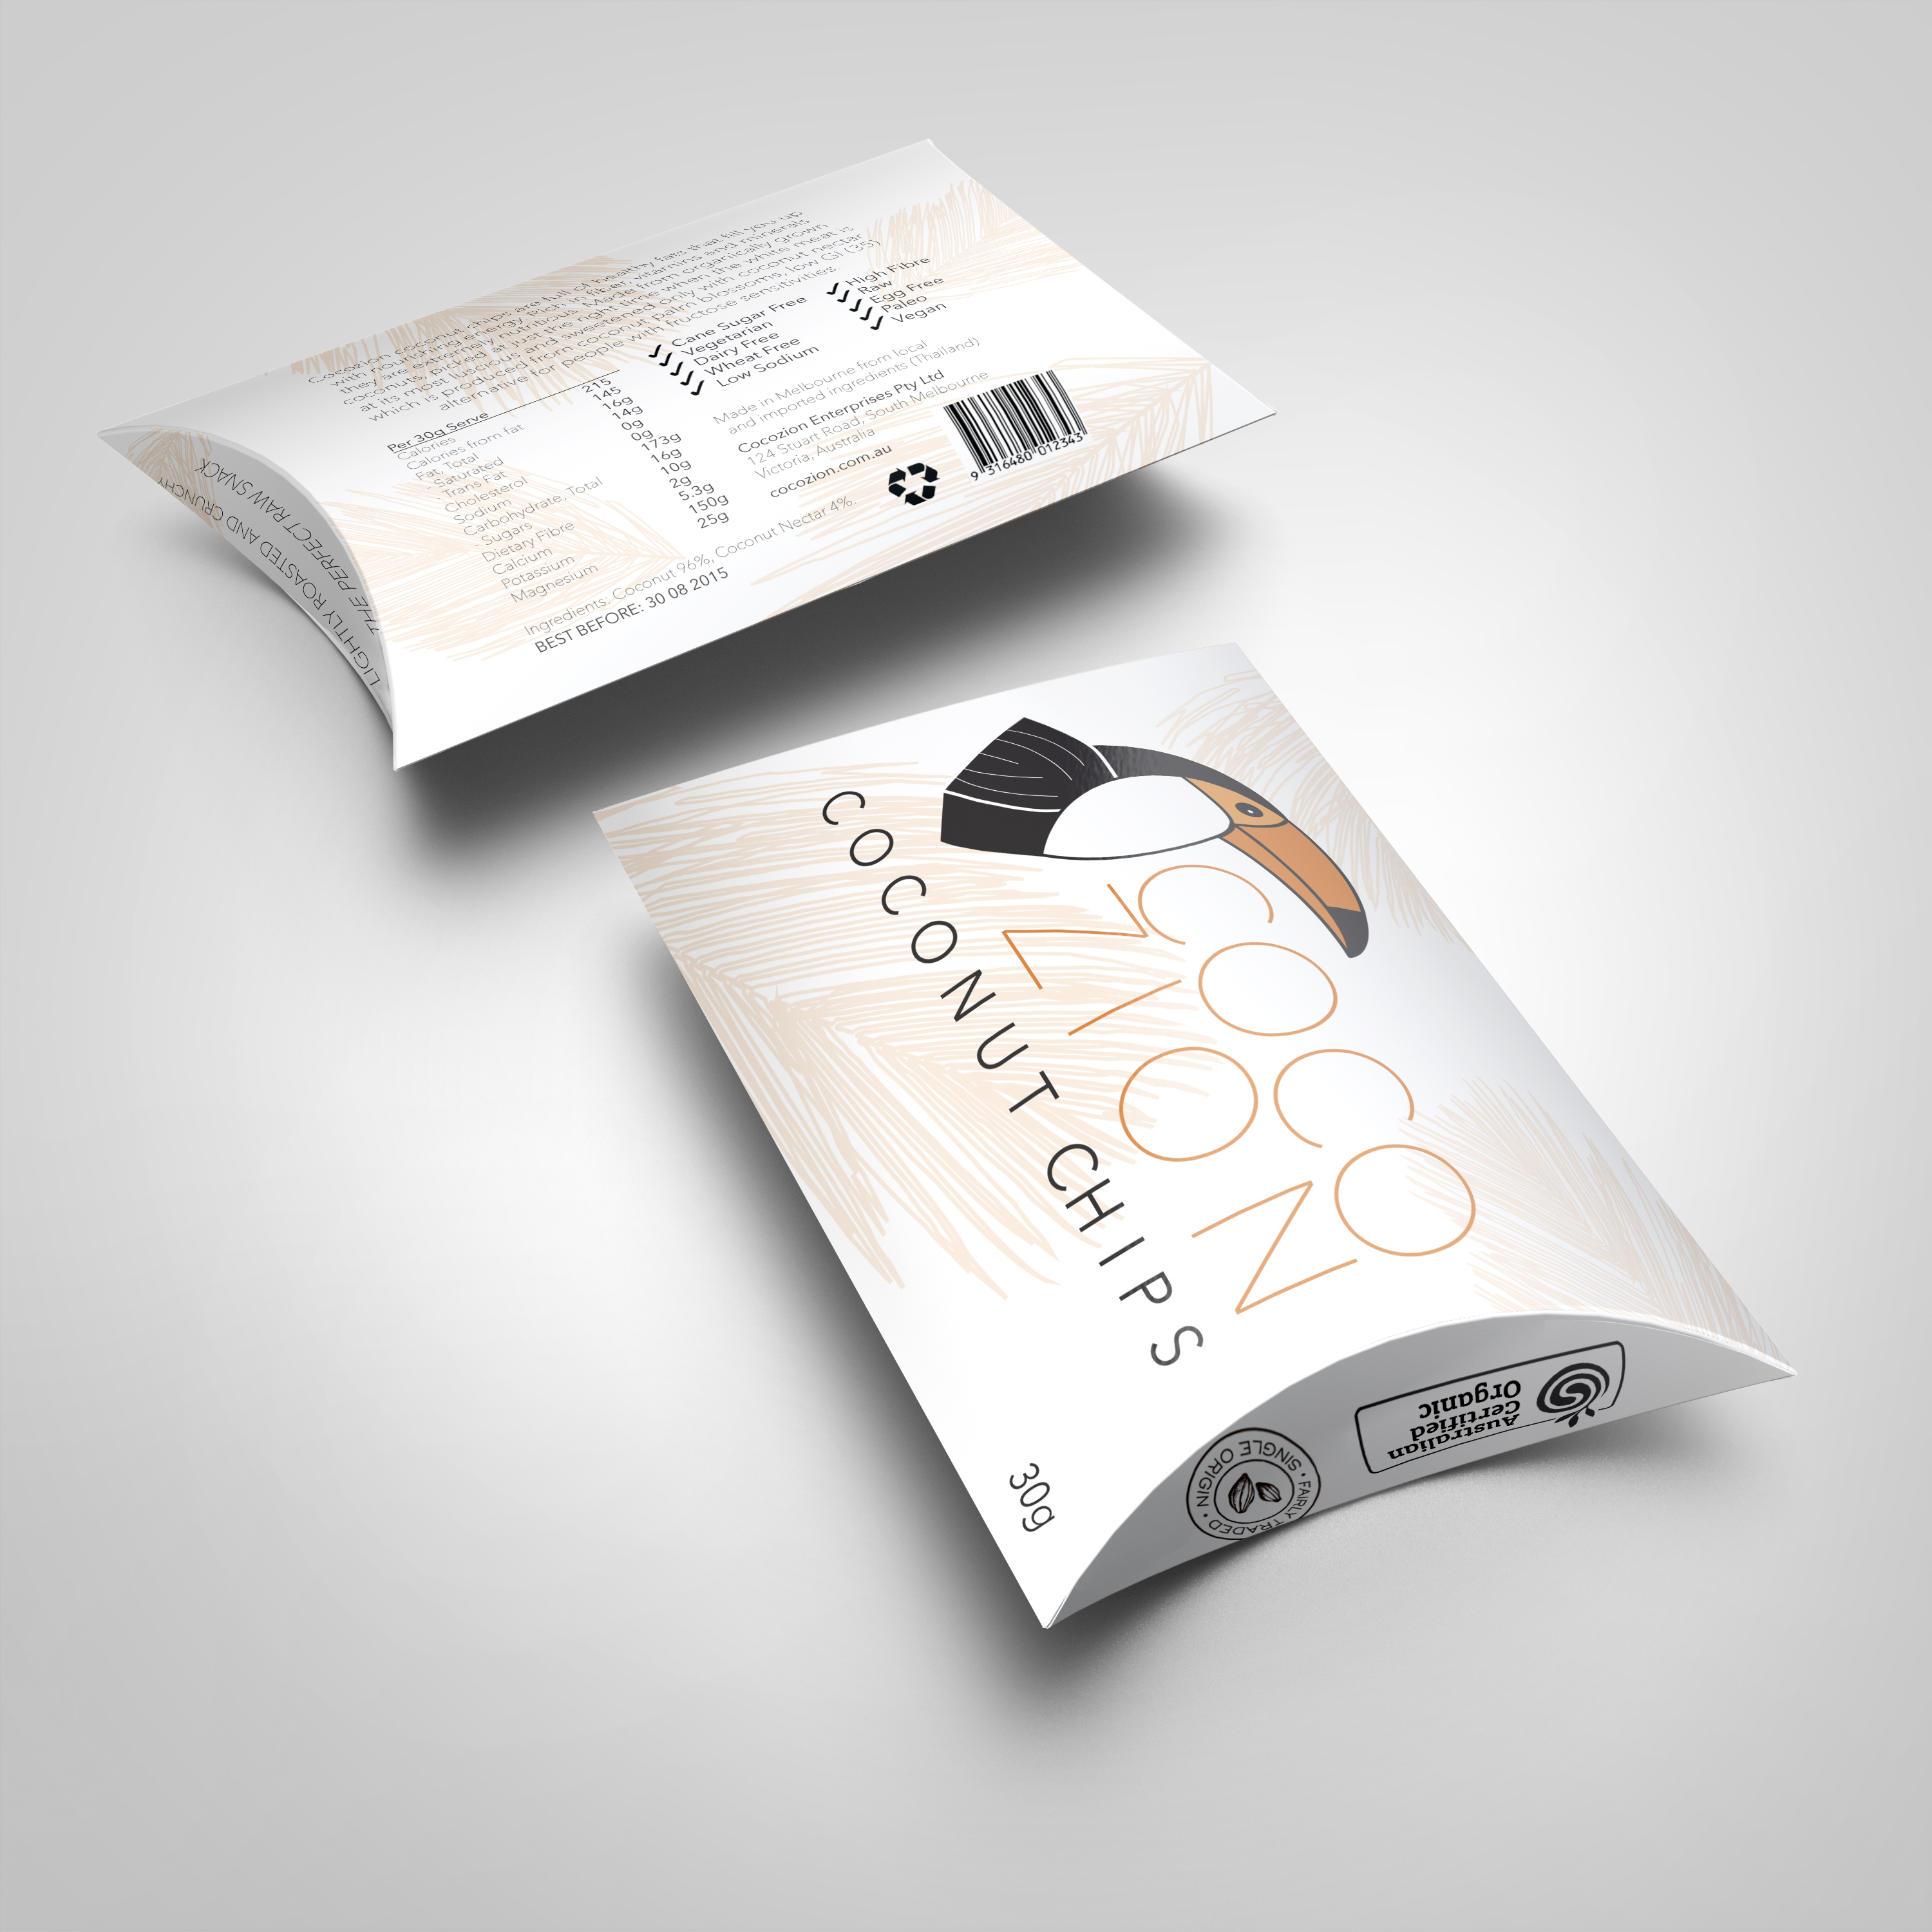 Cocozion | Pillow Box Packaging